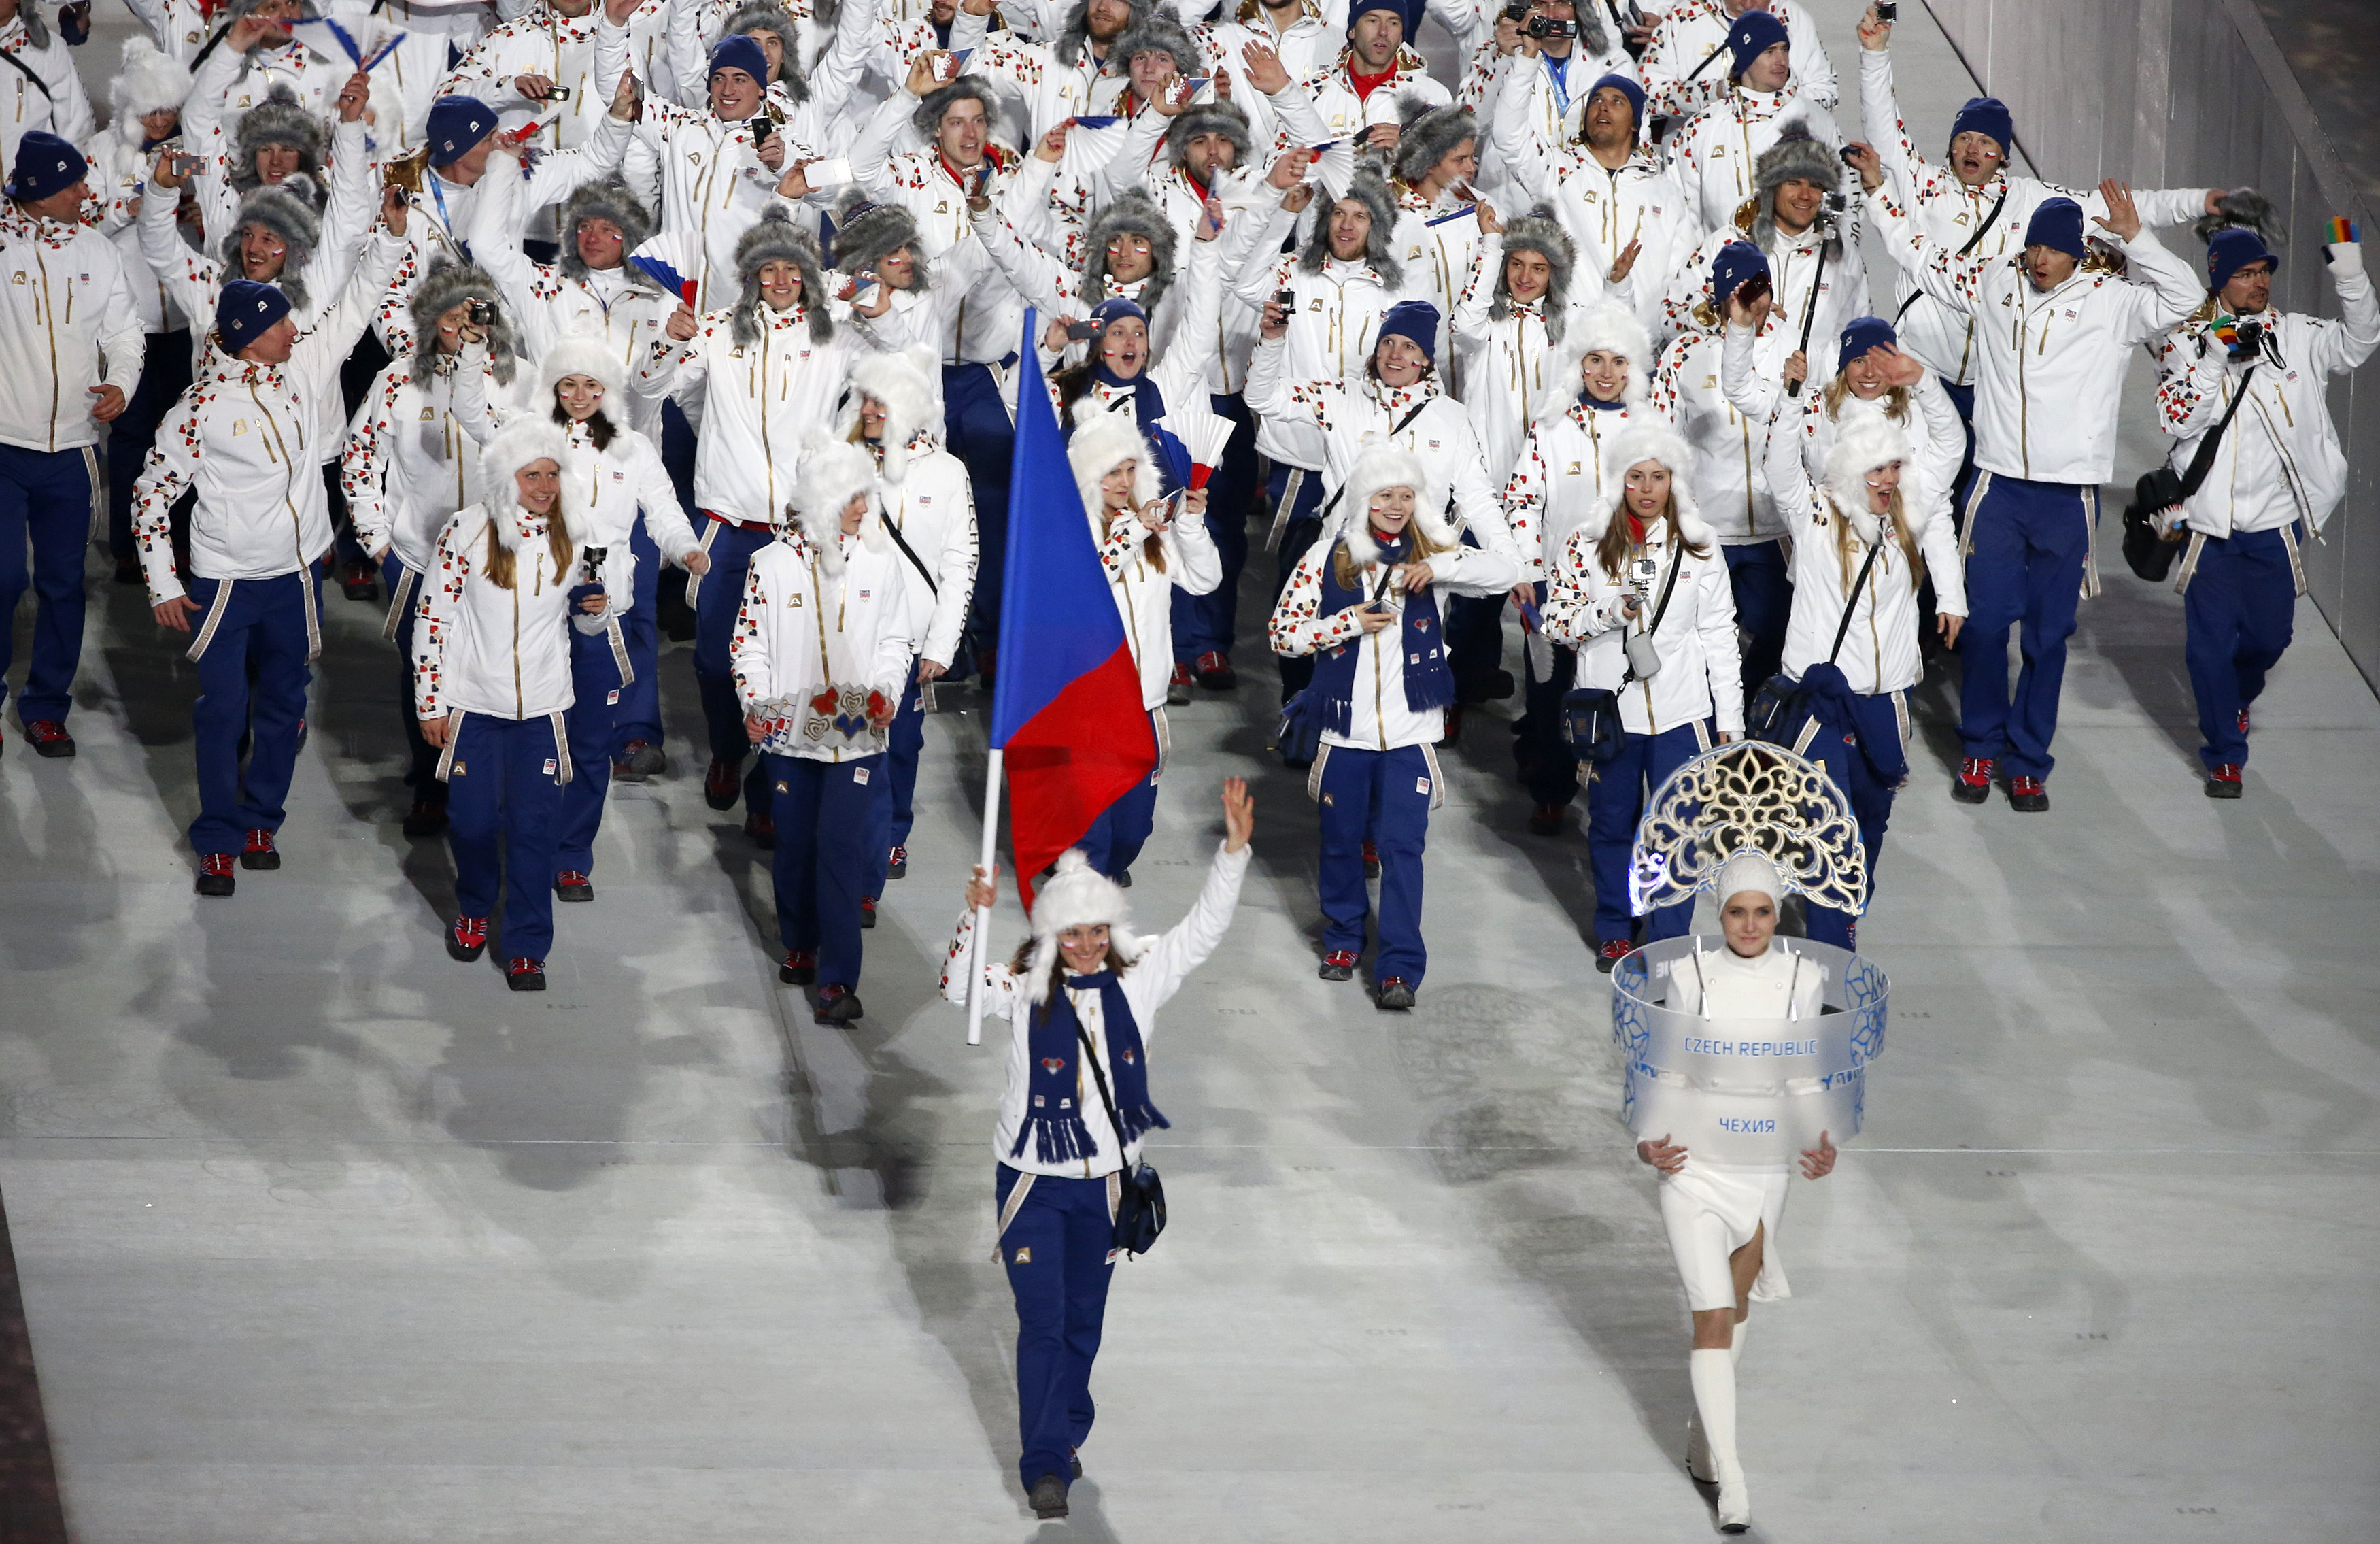 Flag-bearer Strachova of the Czech Republic leads her country's contingent during the athletes' parade at the opening ceremony of the 2014 Sochi Winter Olympics